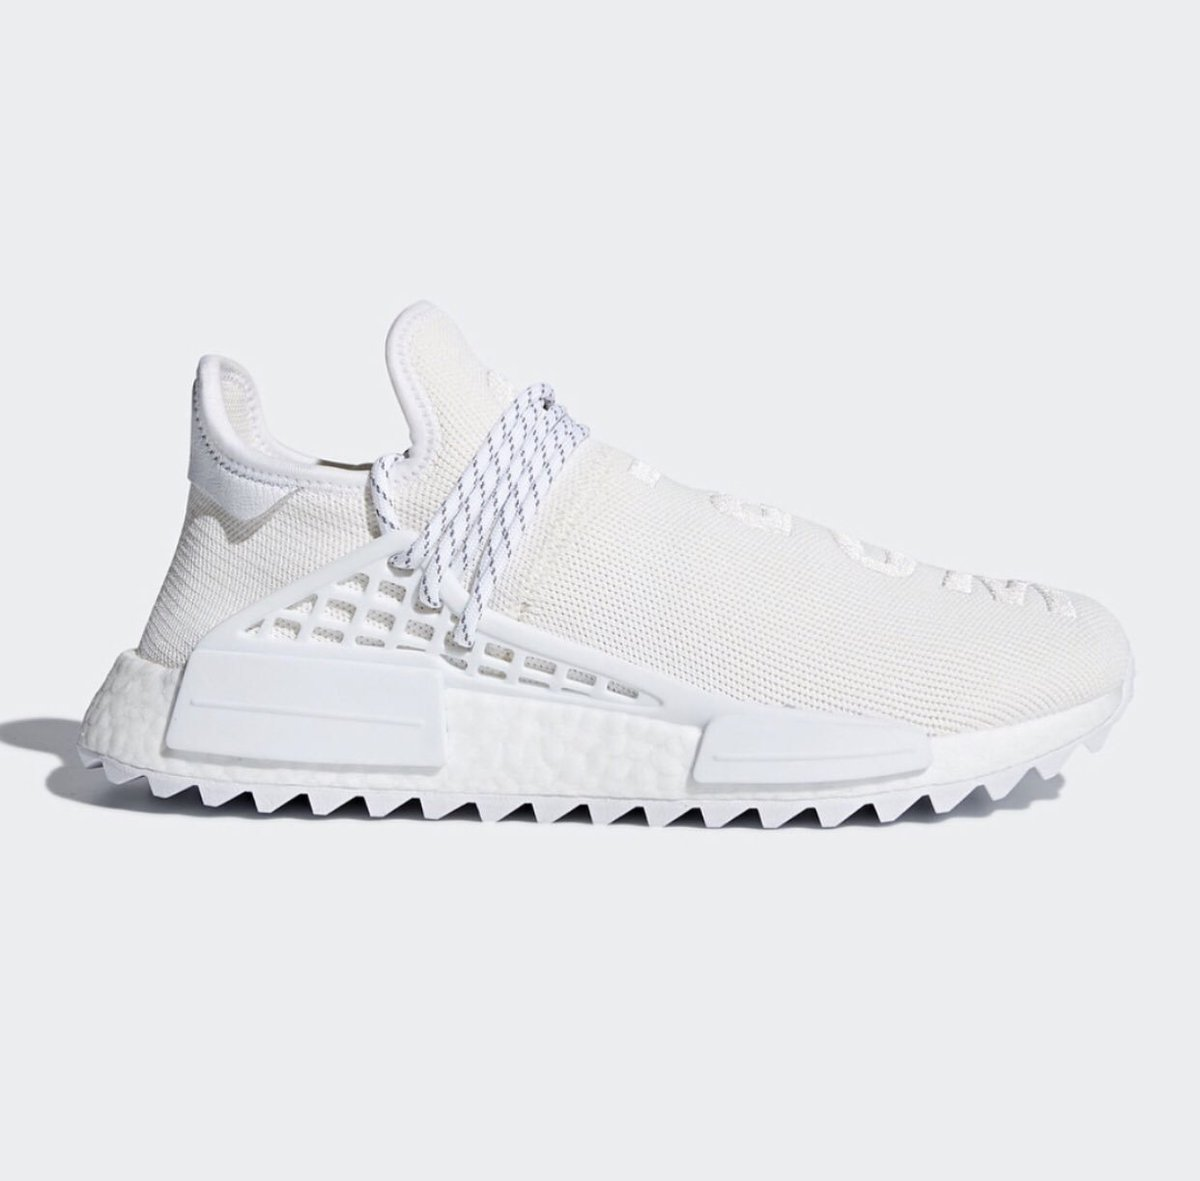 factory price a3355 8f710 Og Shoes LLC on Twitter: